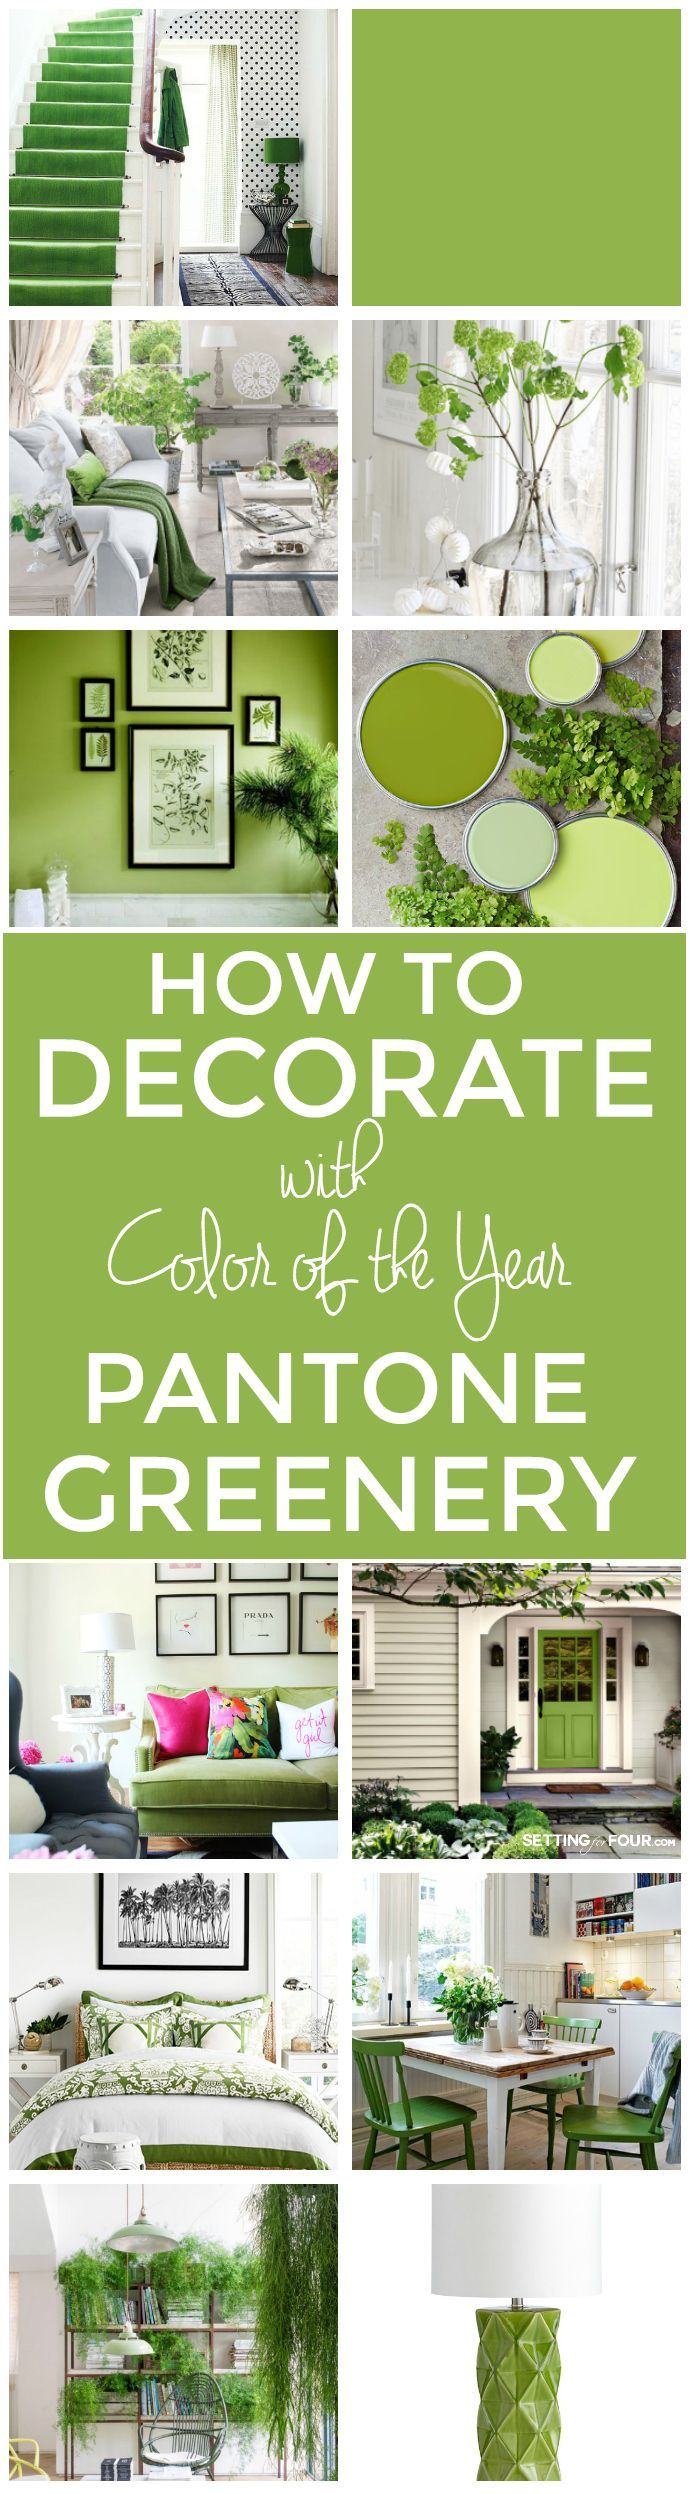 Home products company decorating ideas news amp media download contact - How To Decorate With Pantone Color Of The Year Greenery See All Of The Gorgeous